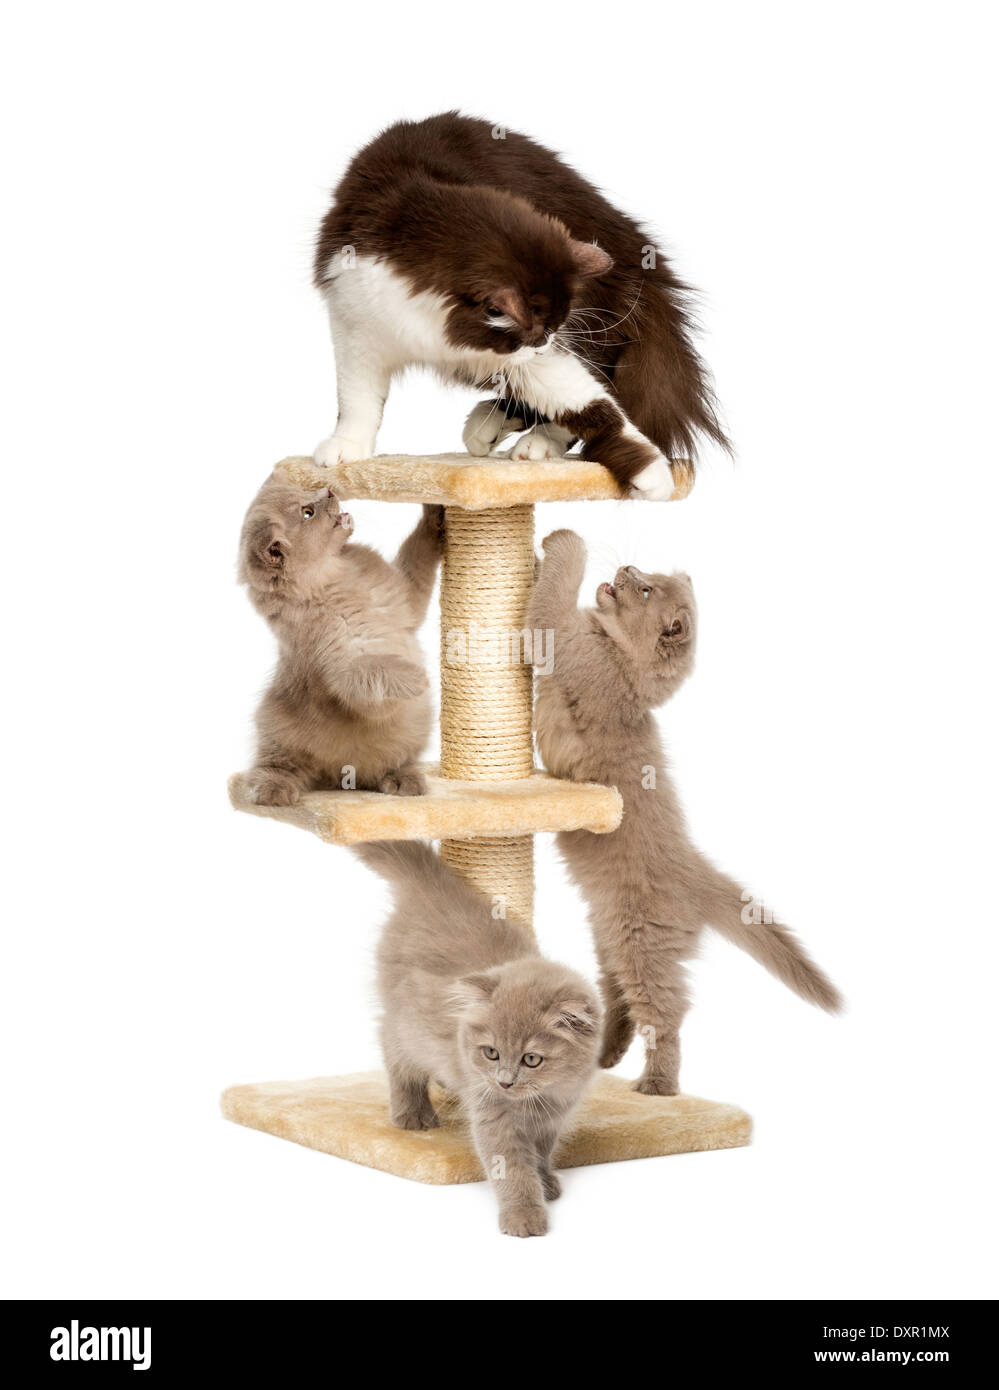 Mother cat playing with her kittens on a cat tree against white background - Stock Image